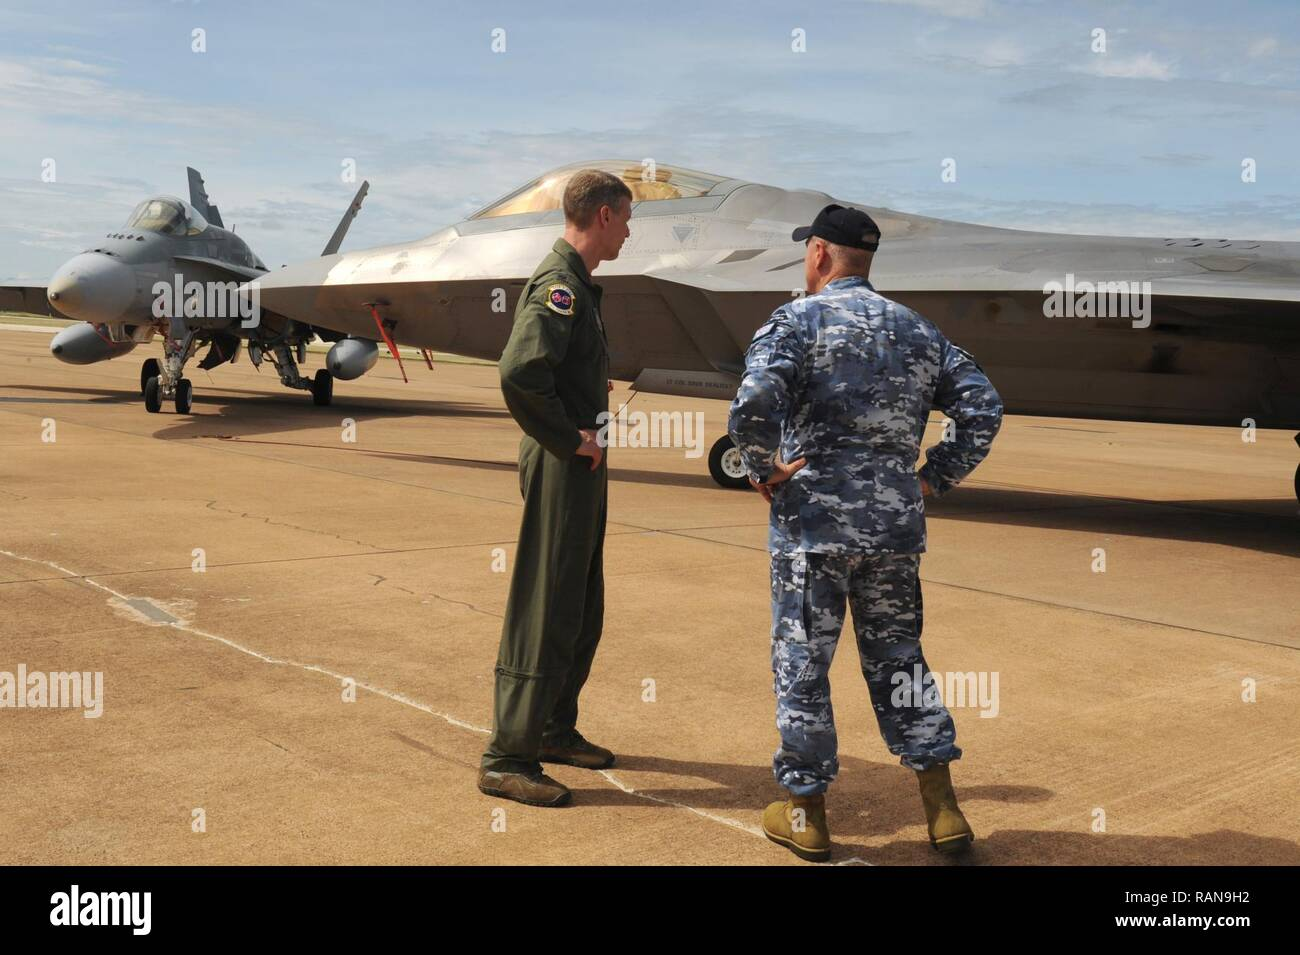 U.S. Air Force Lt. Col. David Skalicky, 90th Fighter Squadron commander, and Wing Commander Andrew Tatnell, Royal Australian Air Force Base Tindal Senior Australian Defence Force Officer, discuss the combined capabilities of the RAAF F/A-18A/B Hornet and U.S. F-22 Raptor at RAAF Base Tindal, Australia, Feb. 24, 2017. Twelve F-22 Raptors and approximately 200 U.S. Air Force Airmen are in Australia as part of the Enhanced Air Cooperation, an initiative under the Force Posture Agreement between the U.S. and Australia. - Stock Image